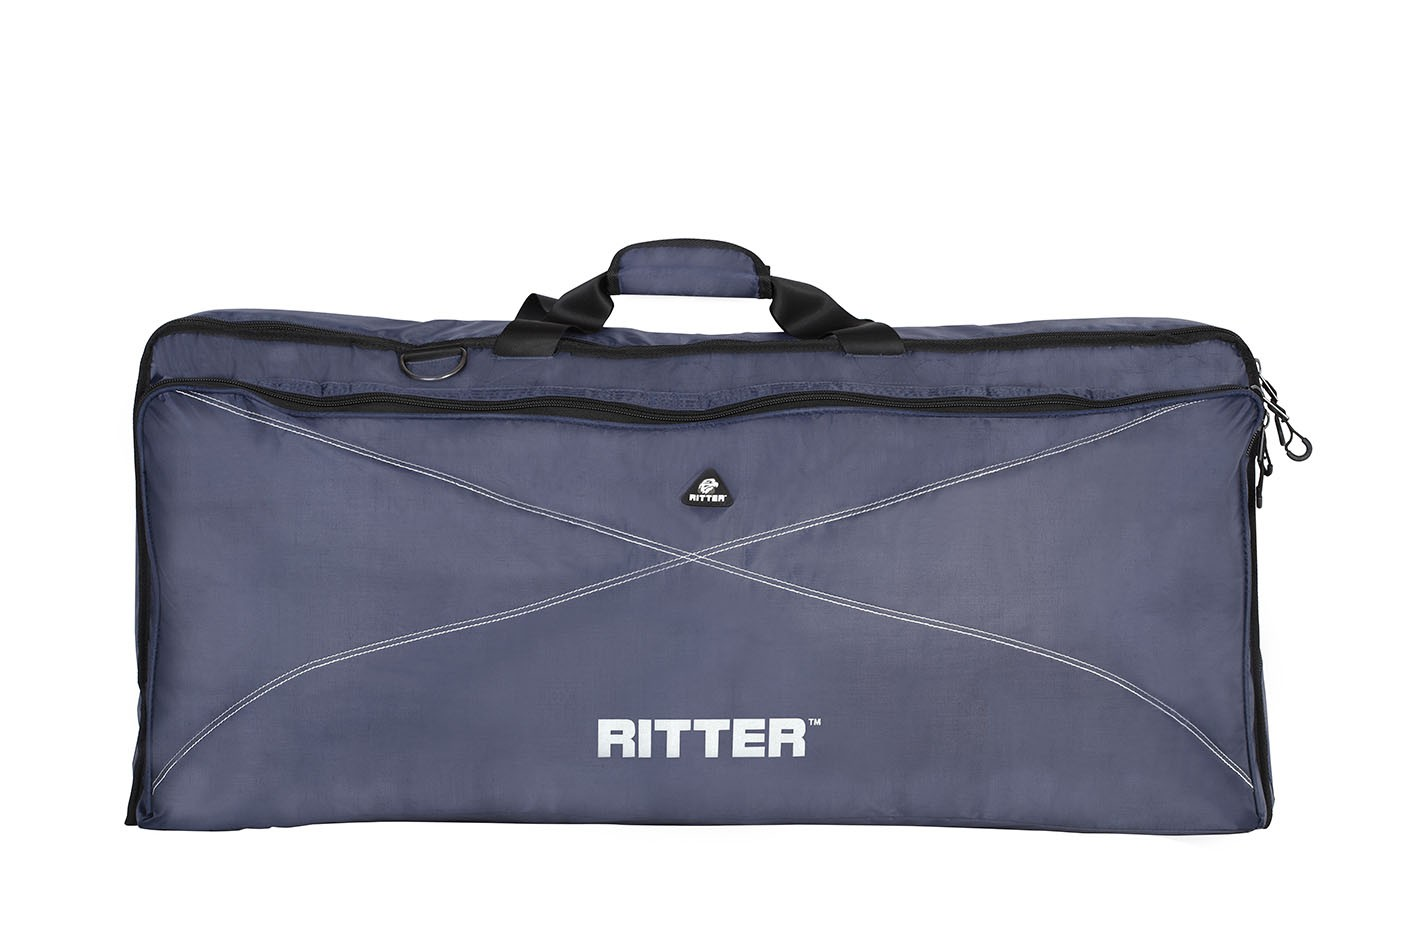 Ritter RKP2-60/BLW Keyboard Bag 1450x475x180 - Navy/Light Grey/White